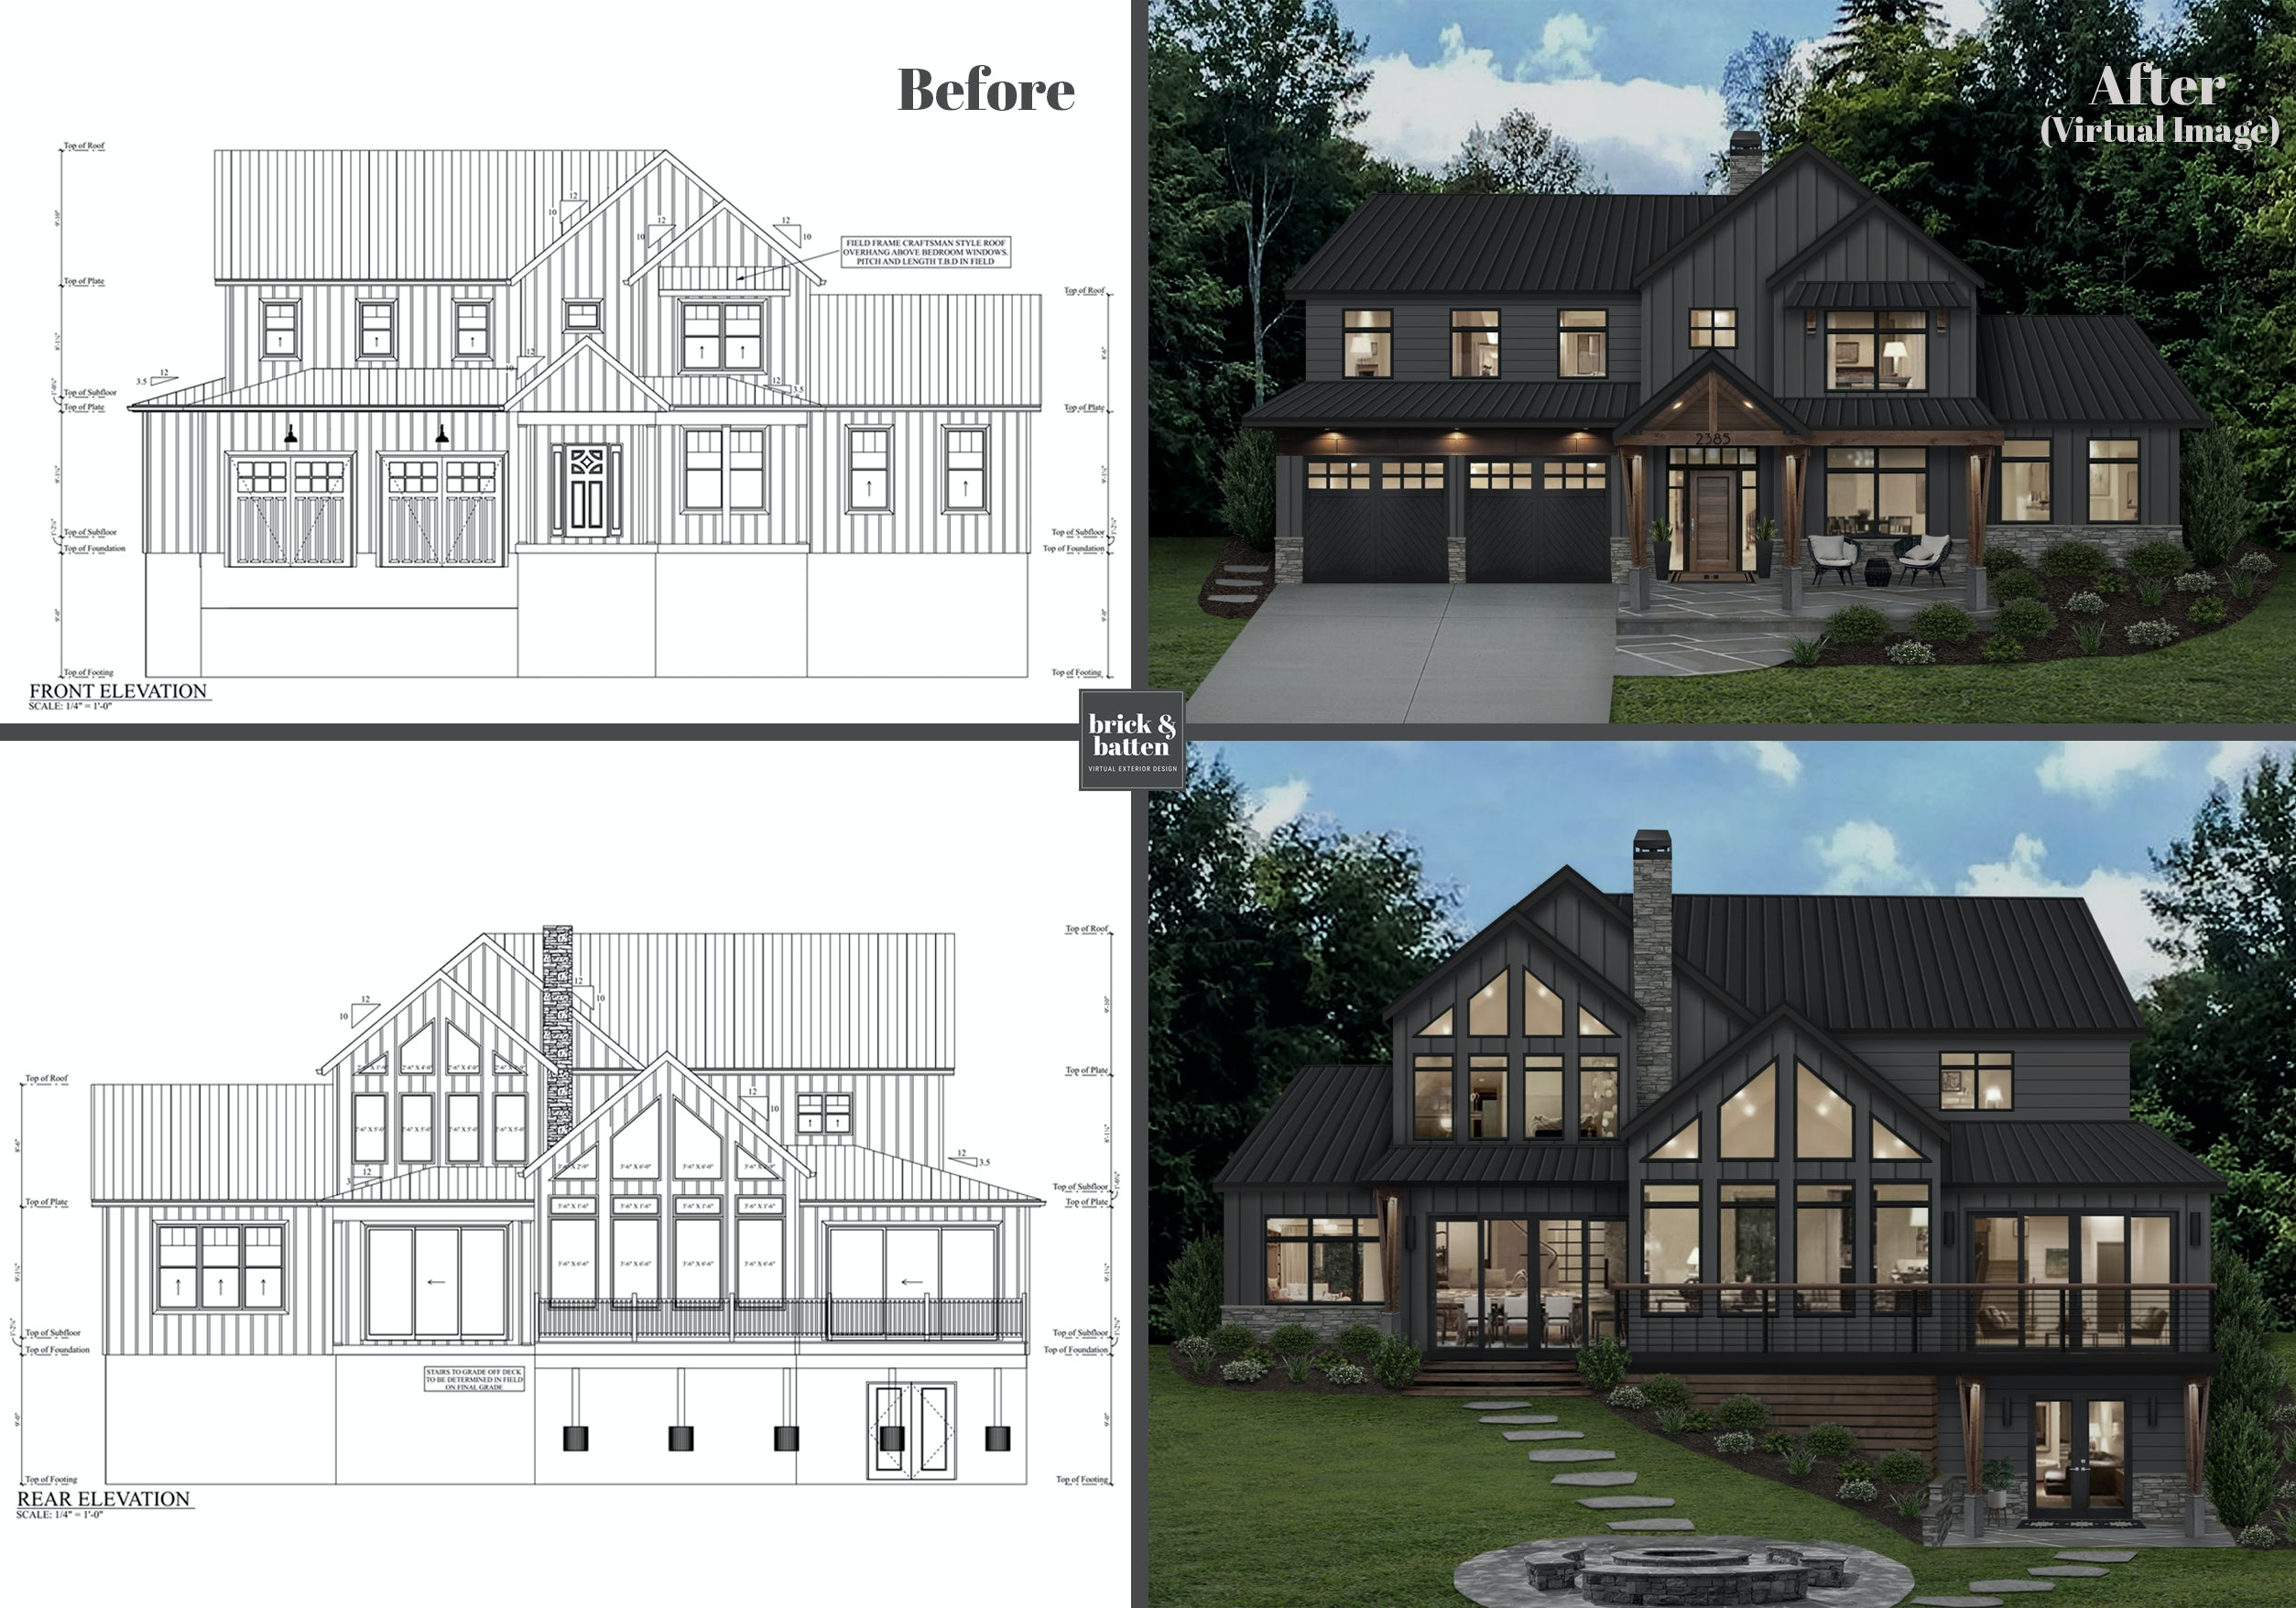 home exterior blueprint to virtual rendering service